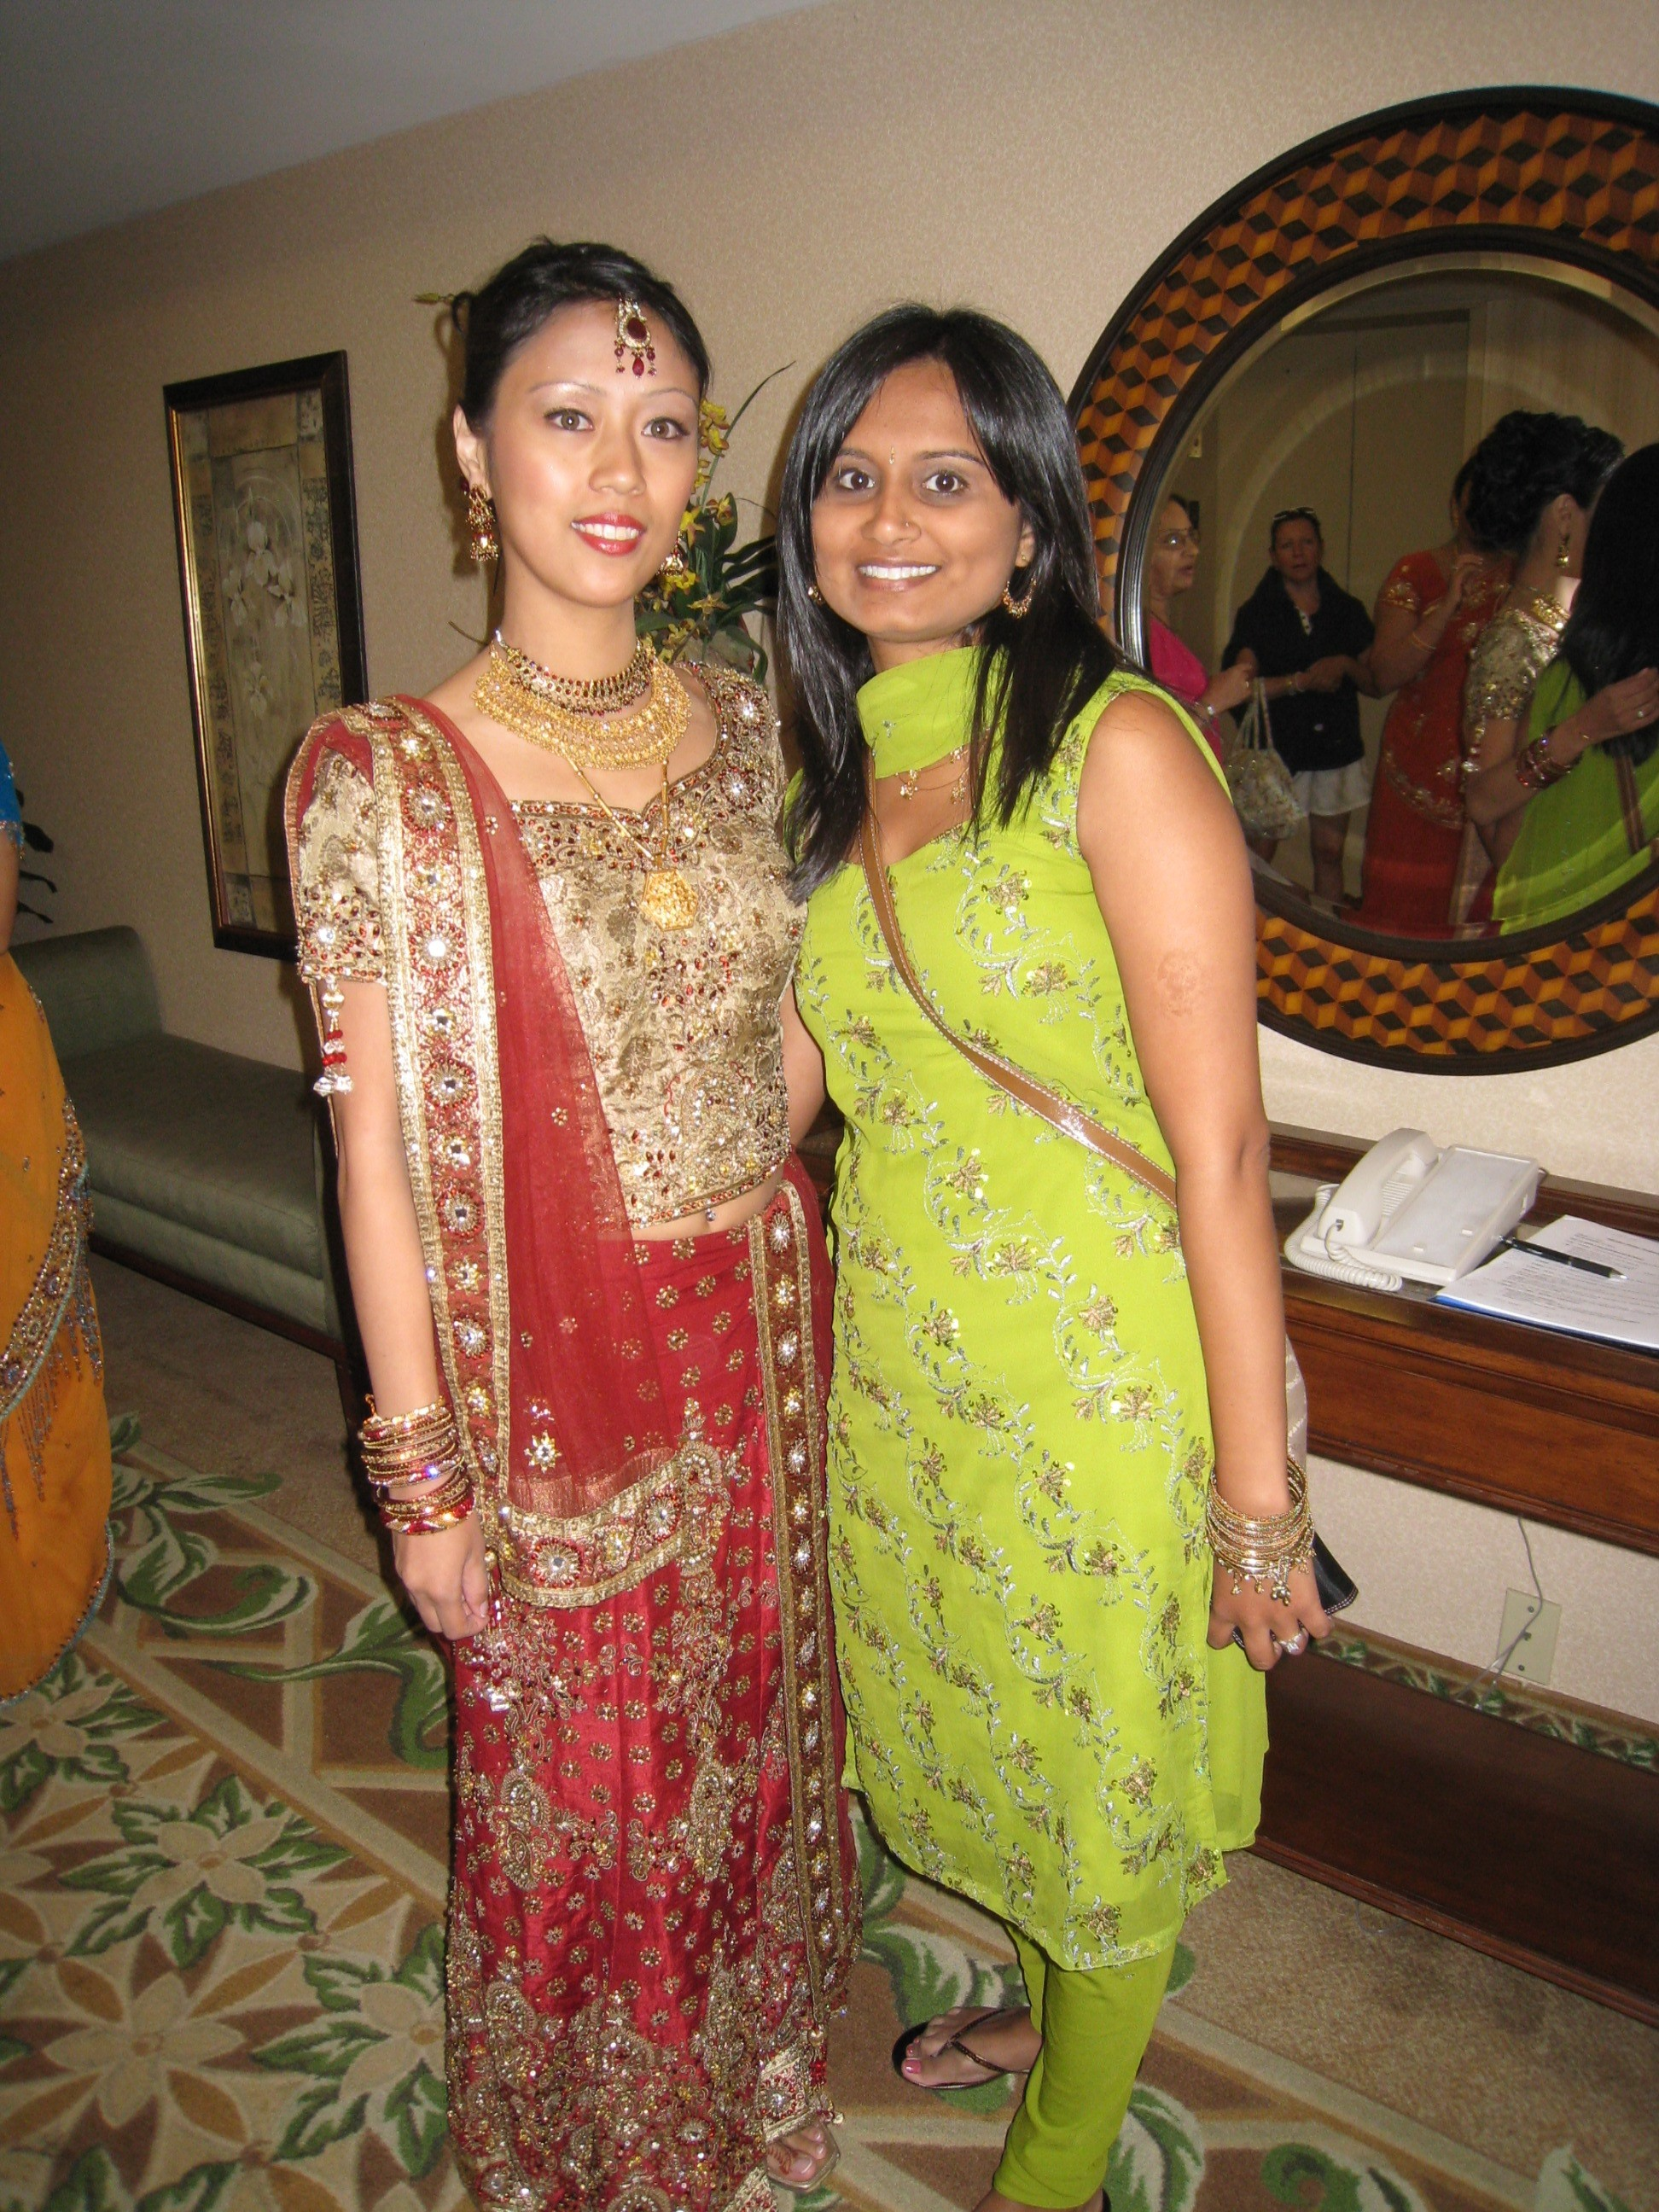 Ceremony, Flowers & Decor, Wedding Dresses, Fashion, red, gold, dress, Bride, Indian, Simply your soiree